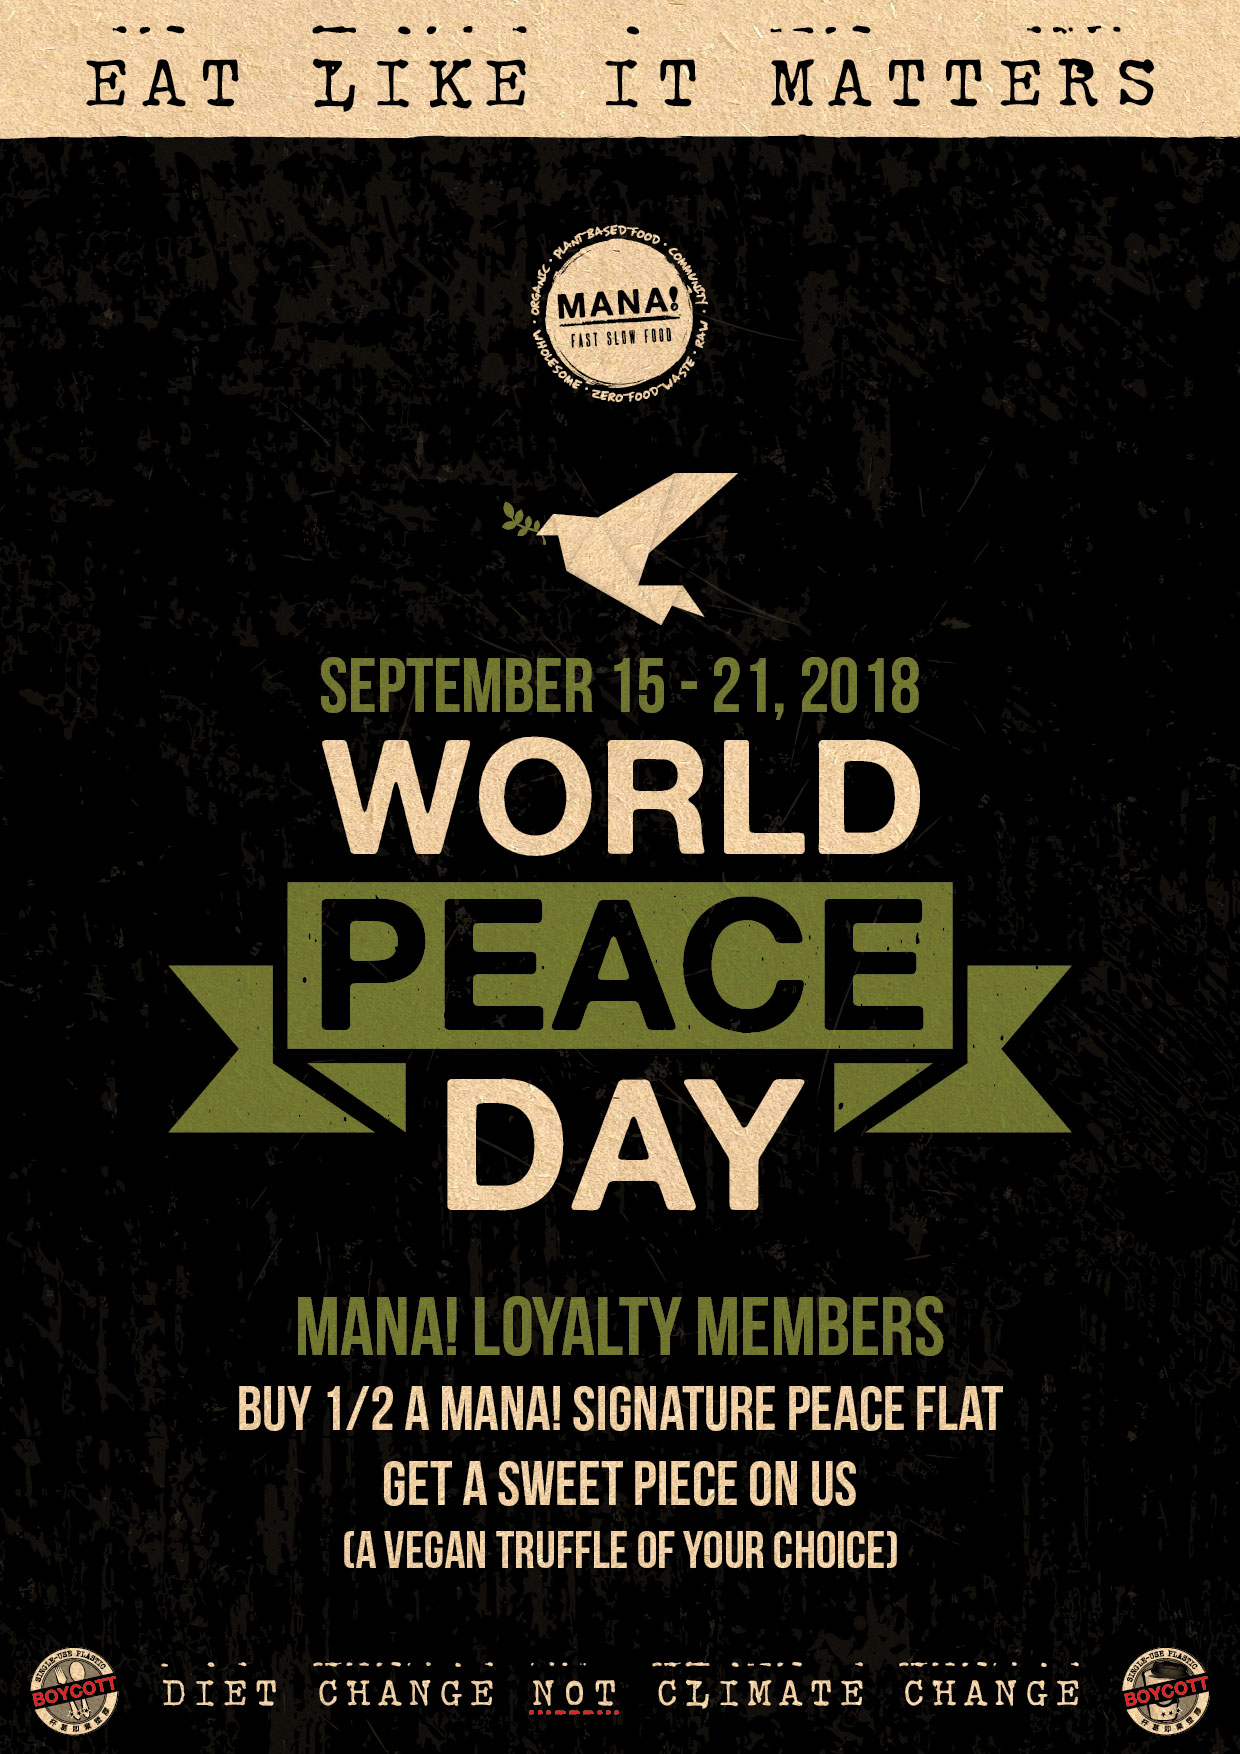 MANA! Community Days (World Peace Day) - Poster 01A-01.jpg